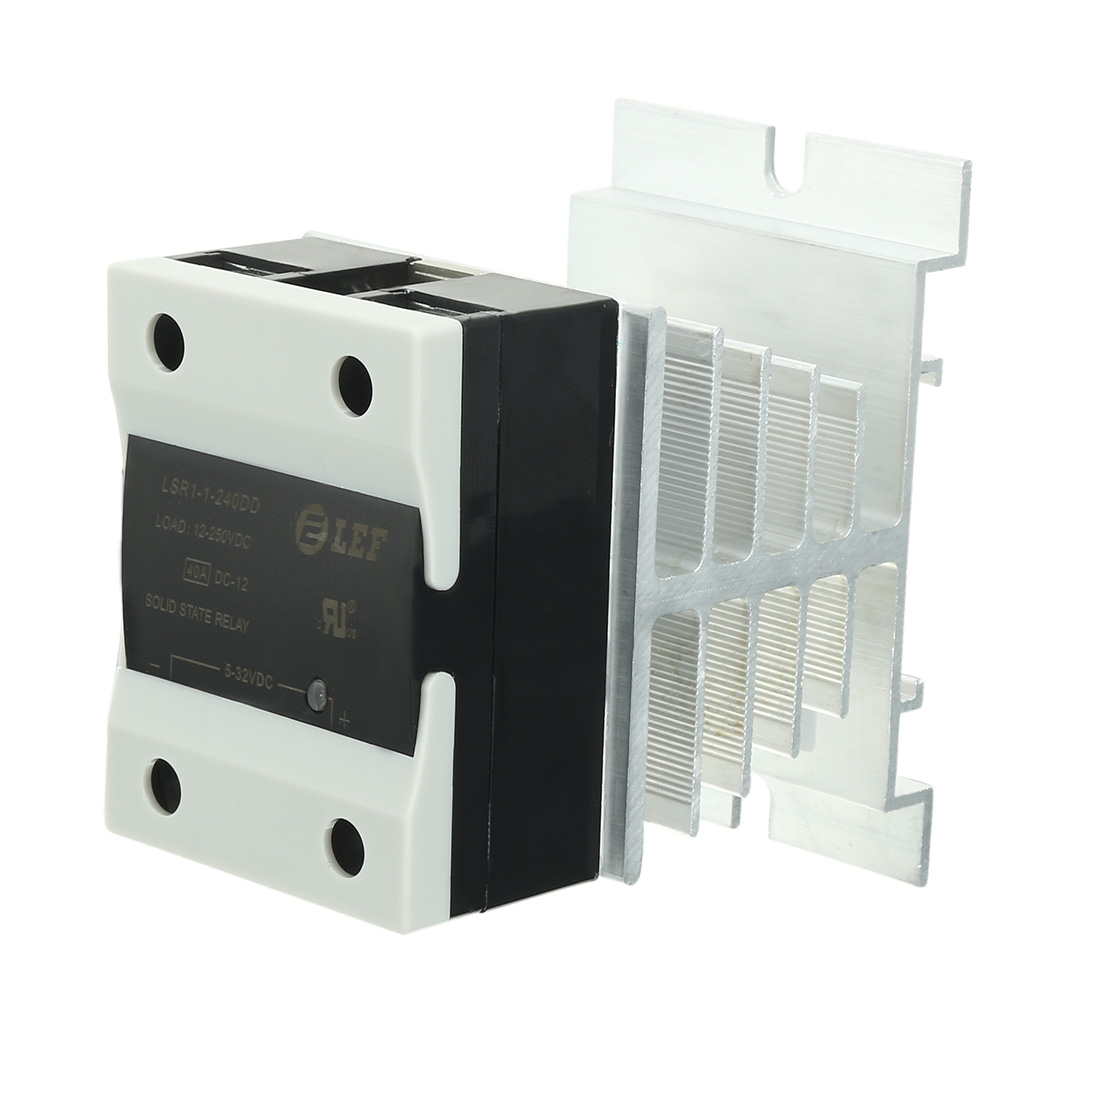 SSR-40A 5-32VDC to 12-250VDC Thermal Compound Solid State Relay + Heat Sink